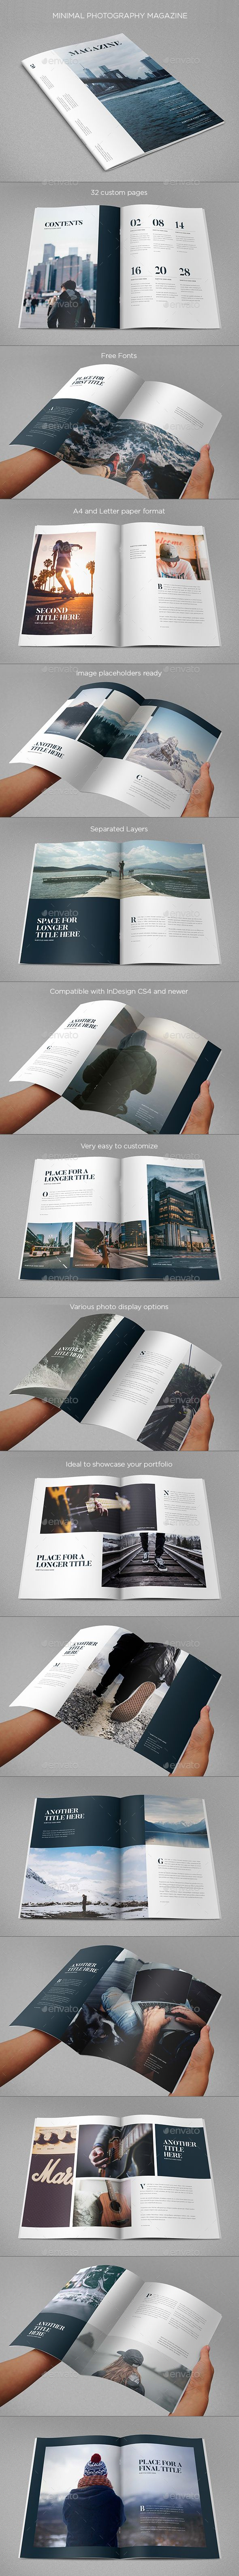 Minimal Photography Magazine Template 	InDesign INDD. Download here: https://graphicriver.net/item/minimal-photography-magazine/17382865?ref=ksioks